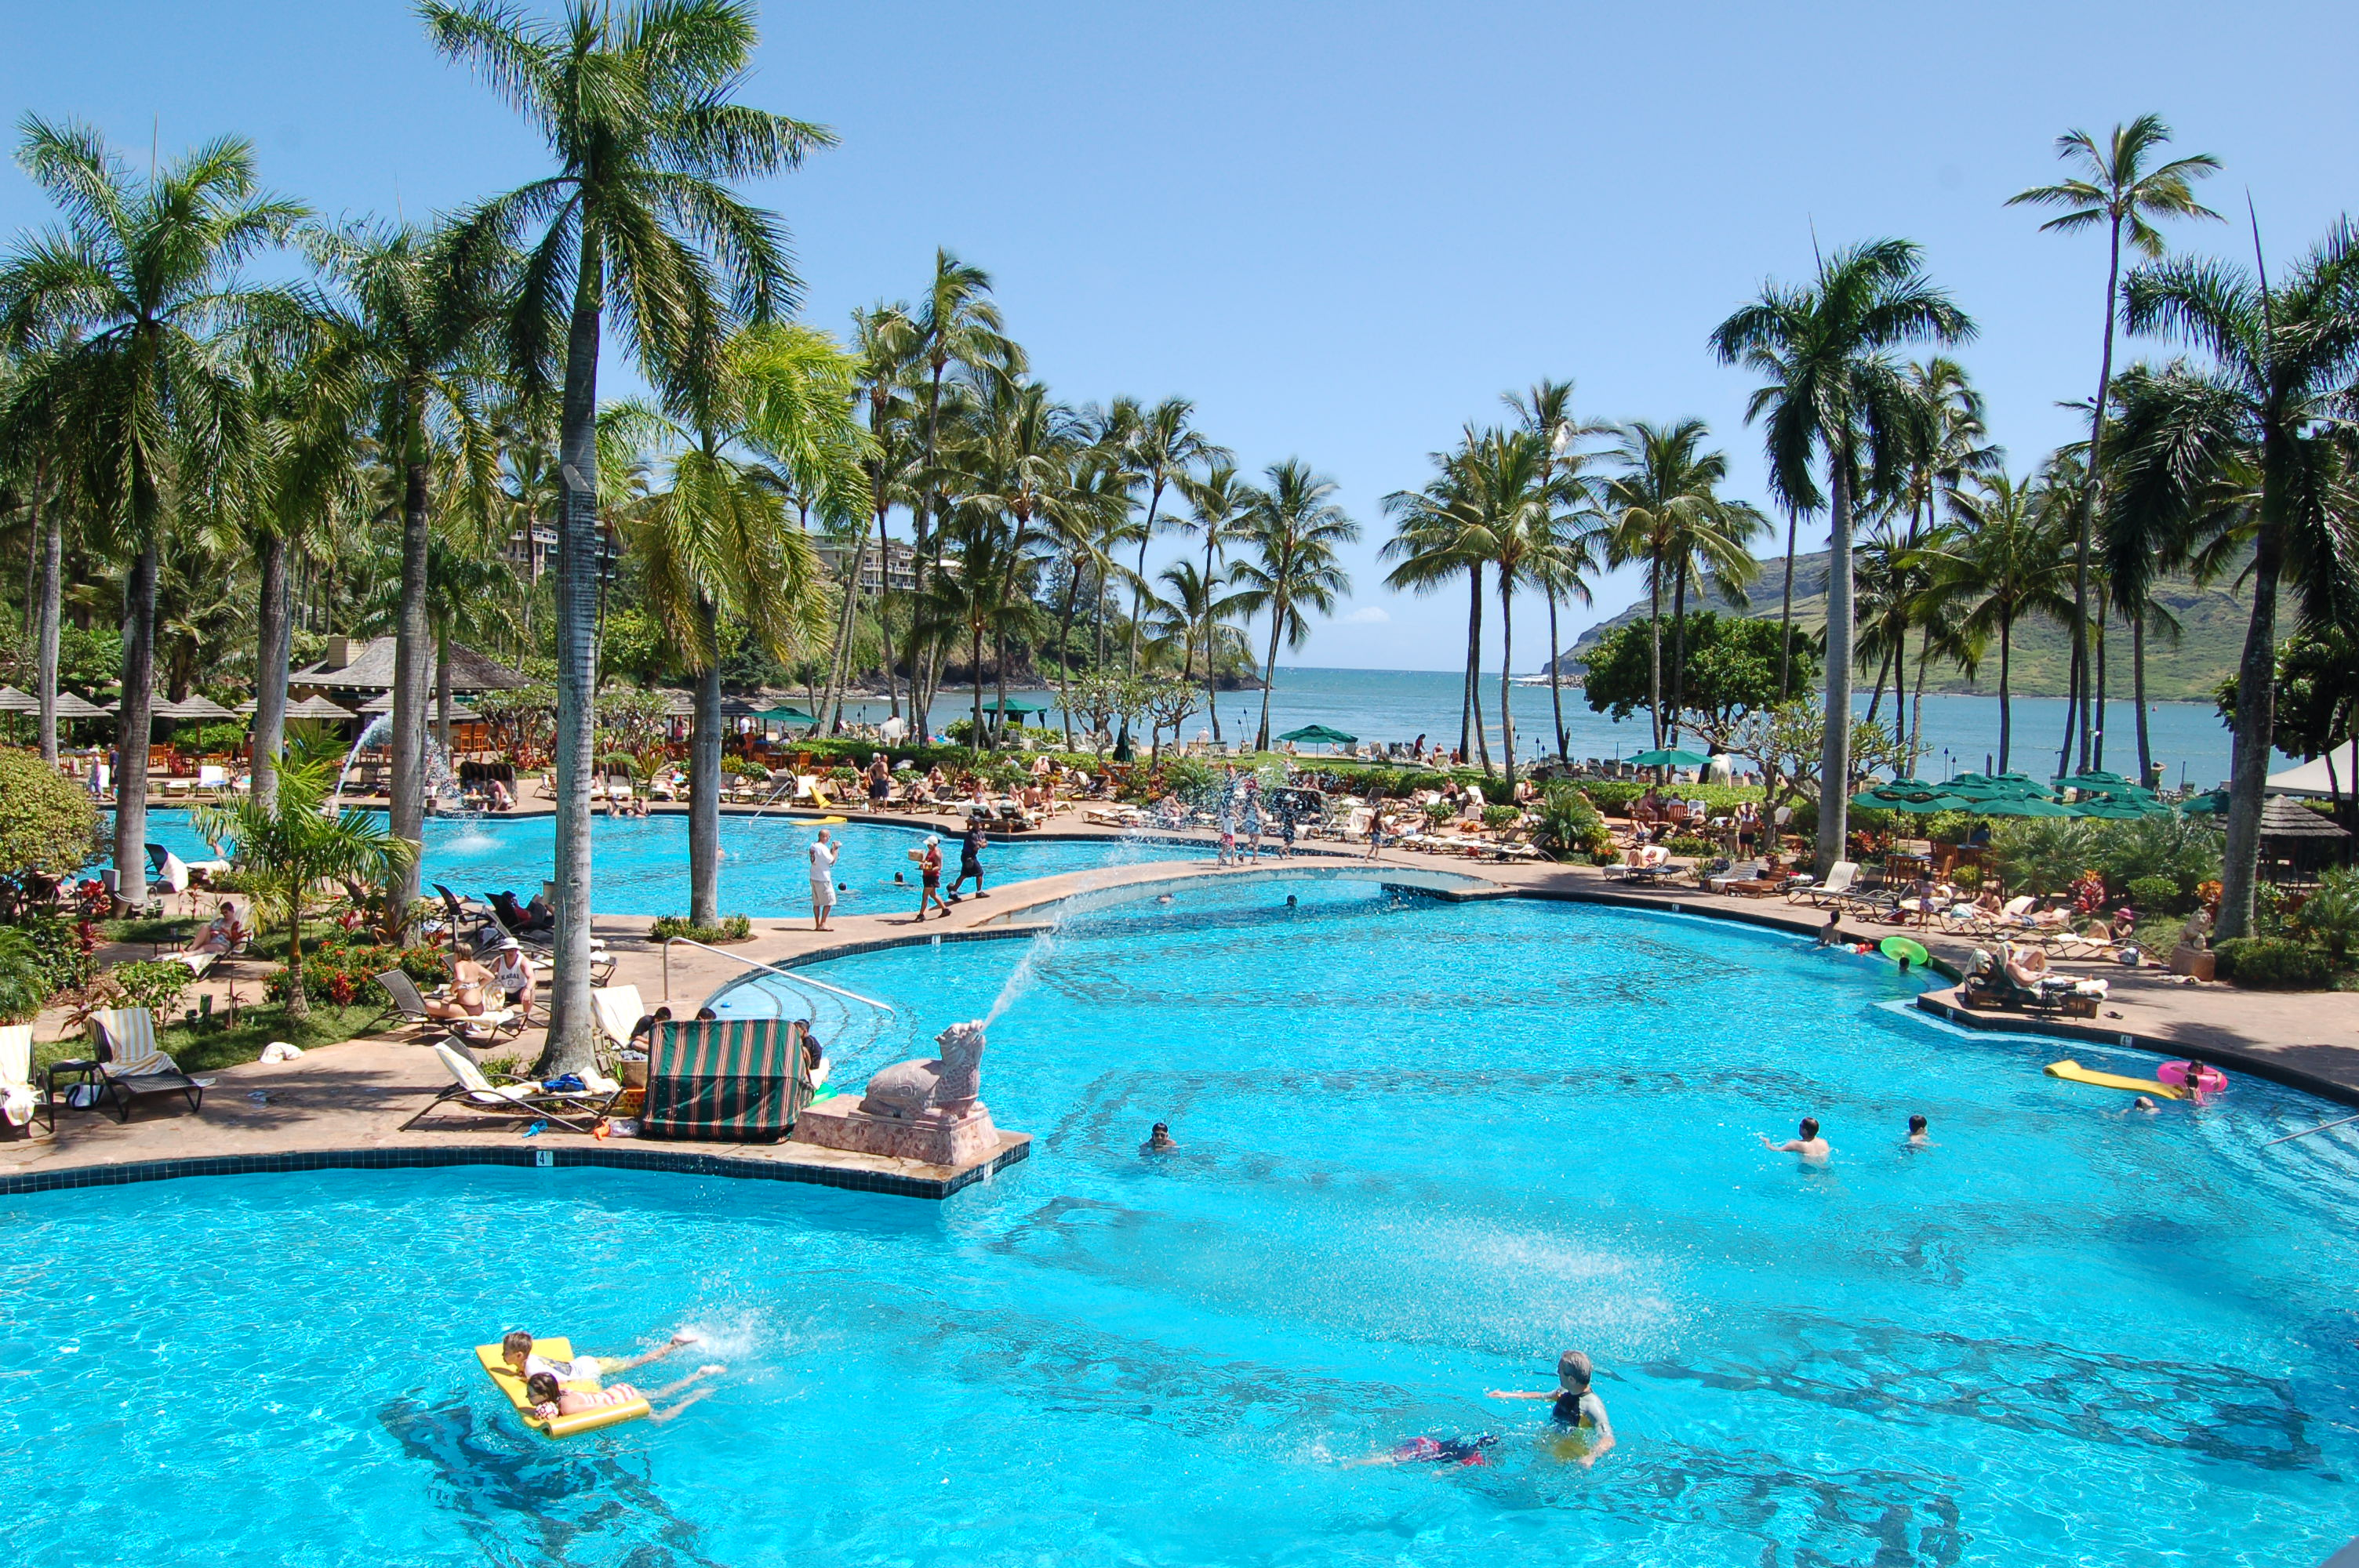 Marriott Kauai Beach Club Timeshare Users Group